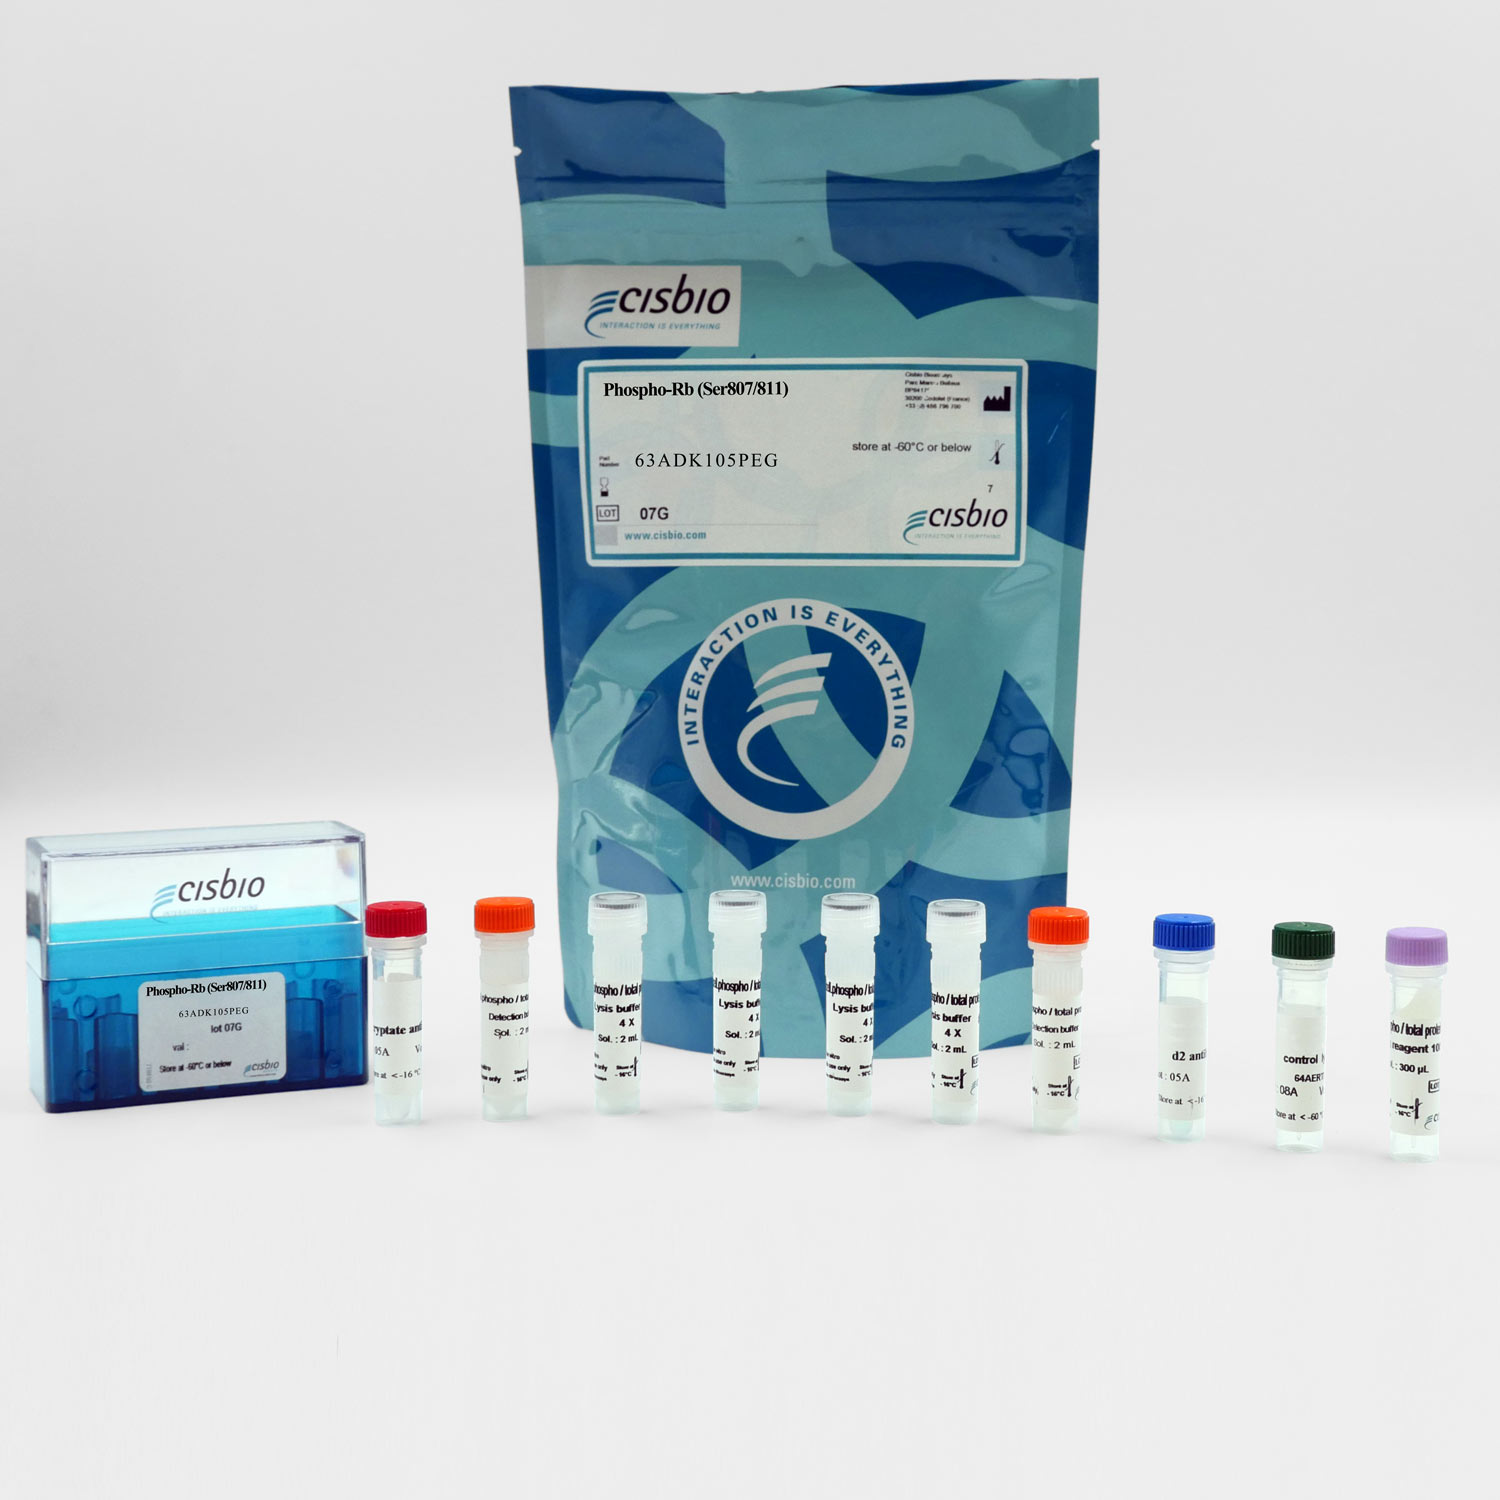 Photography of Phospho Rb Ser807-811 Kit and components